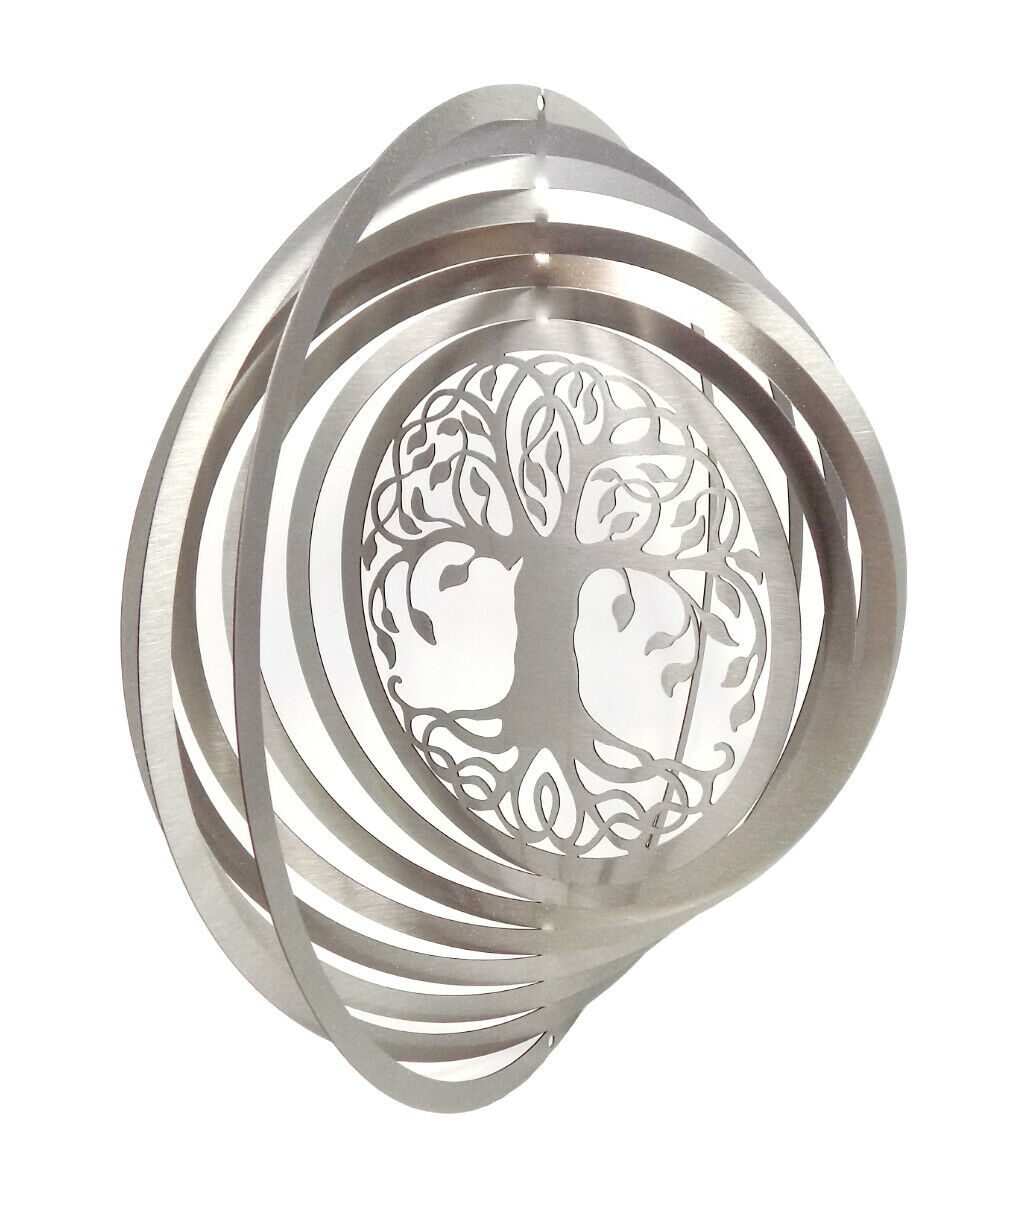 WorldaWhirl Whirligig 3D Tree of Life Wind Spinner Twister Patio Home Decor SS